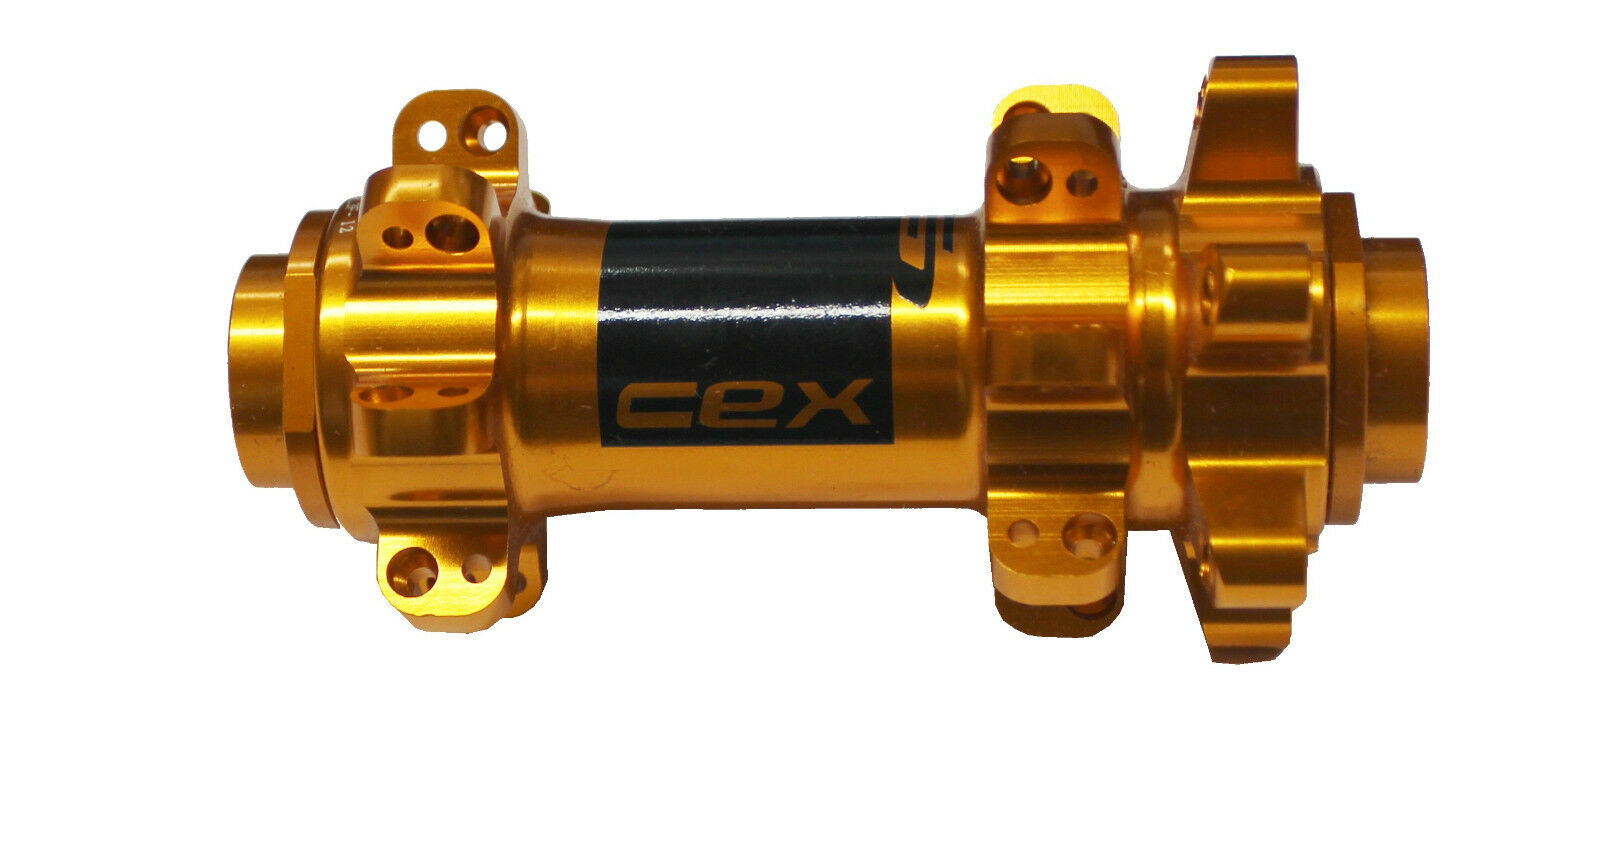 Hub  Concept CEX orange-Metal 6 Hole 15mm Recording axis  up to 42% off